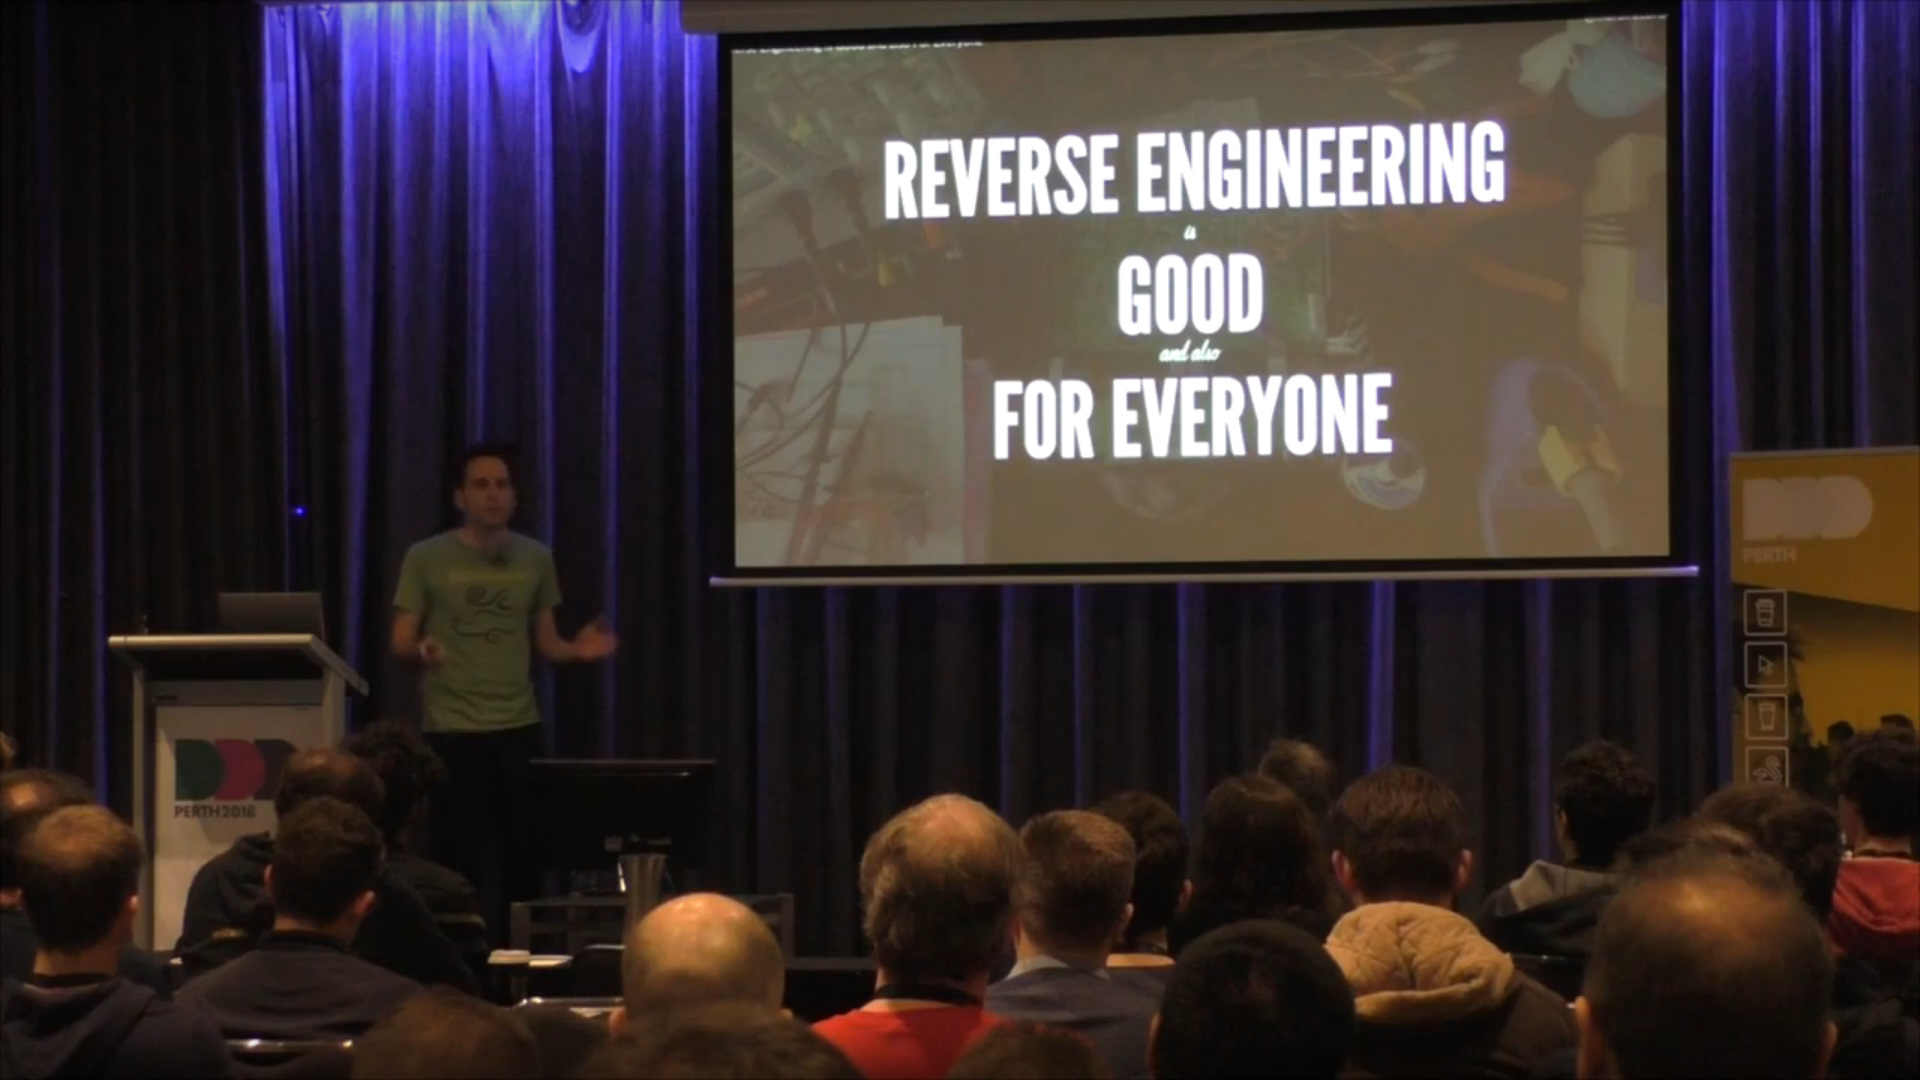 The author preaching about reverse engineering to a captive audience